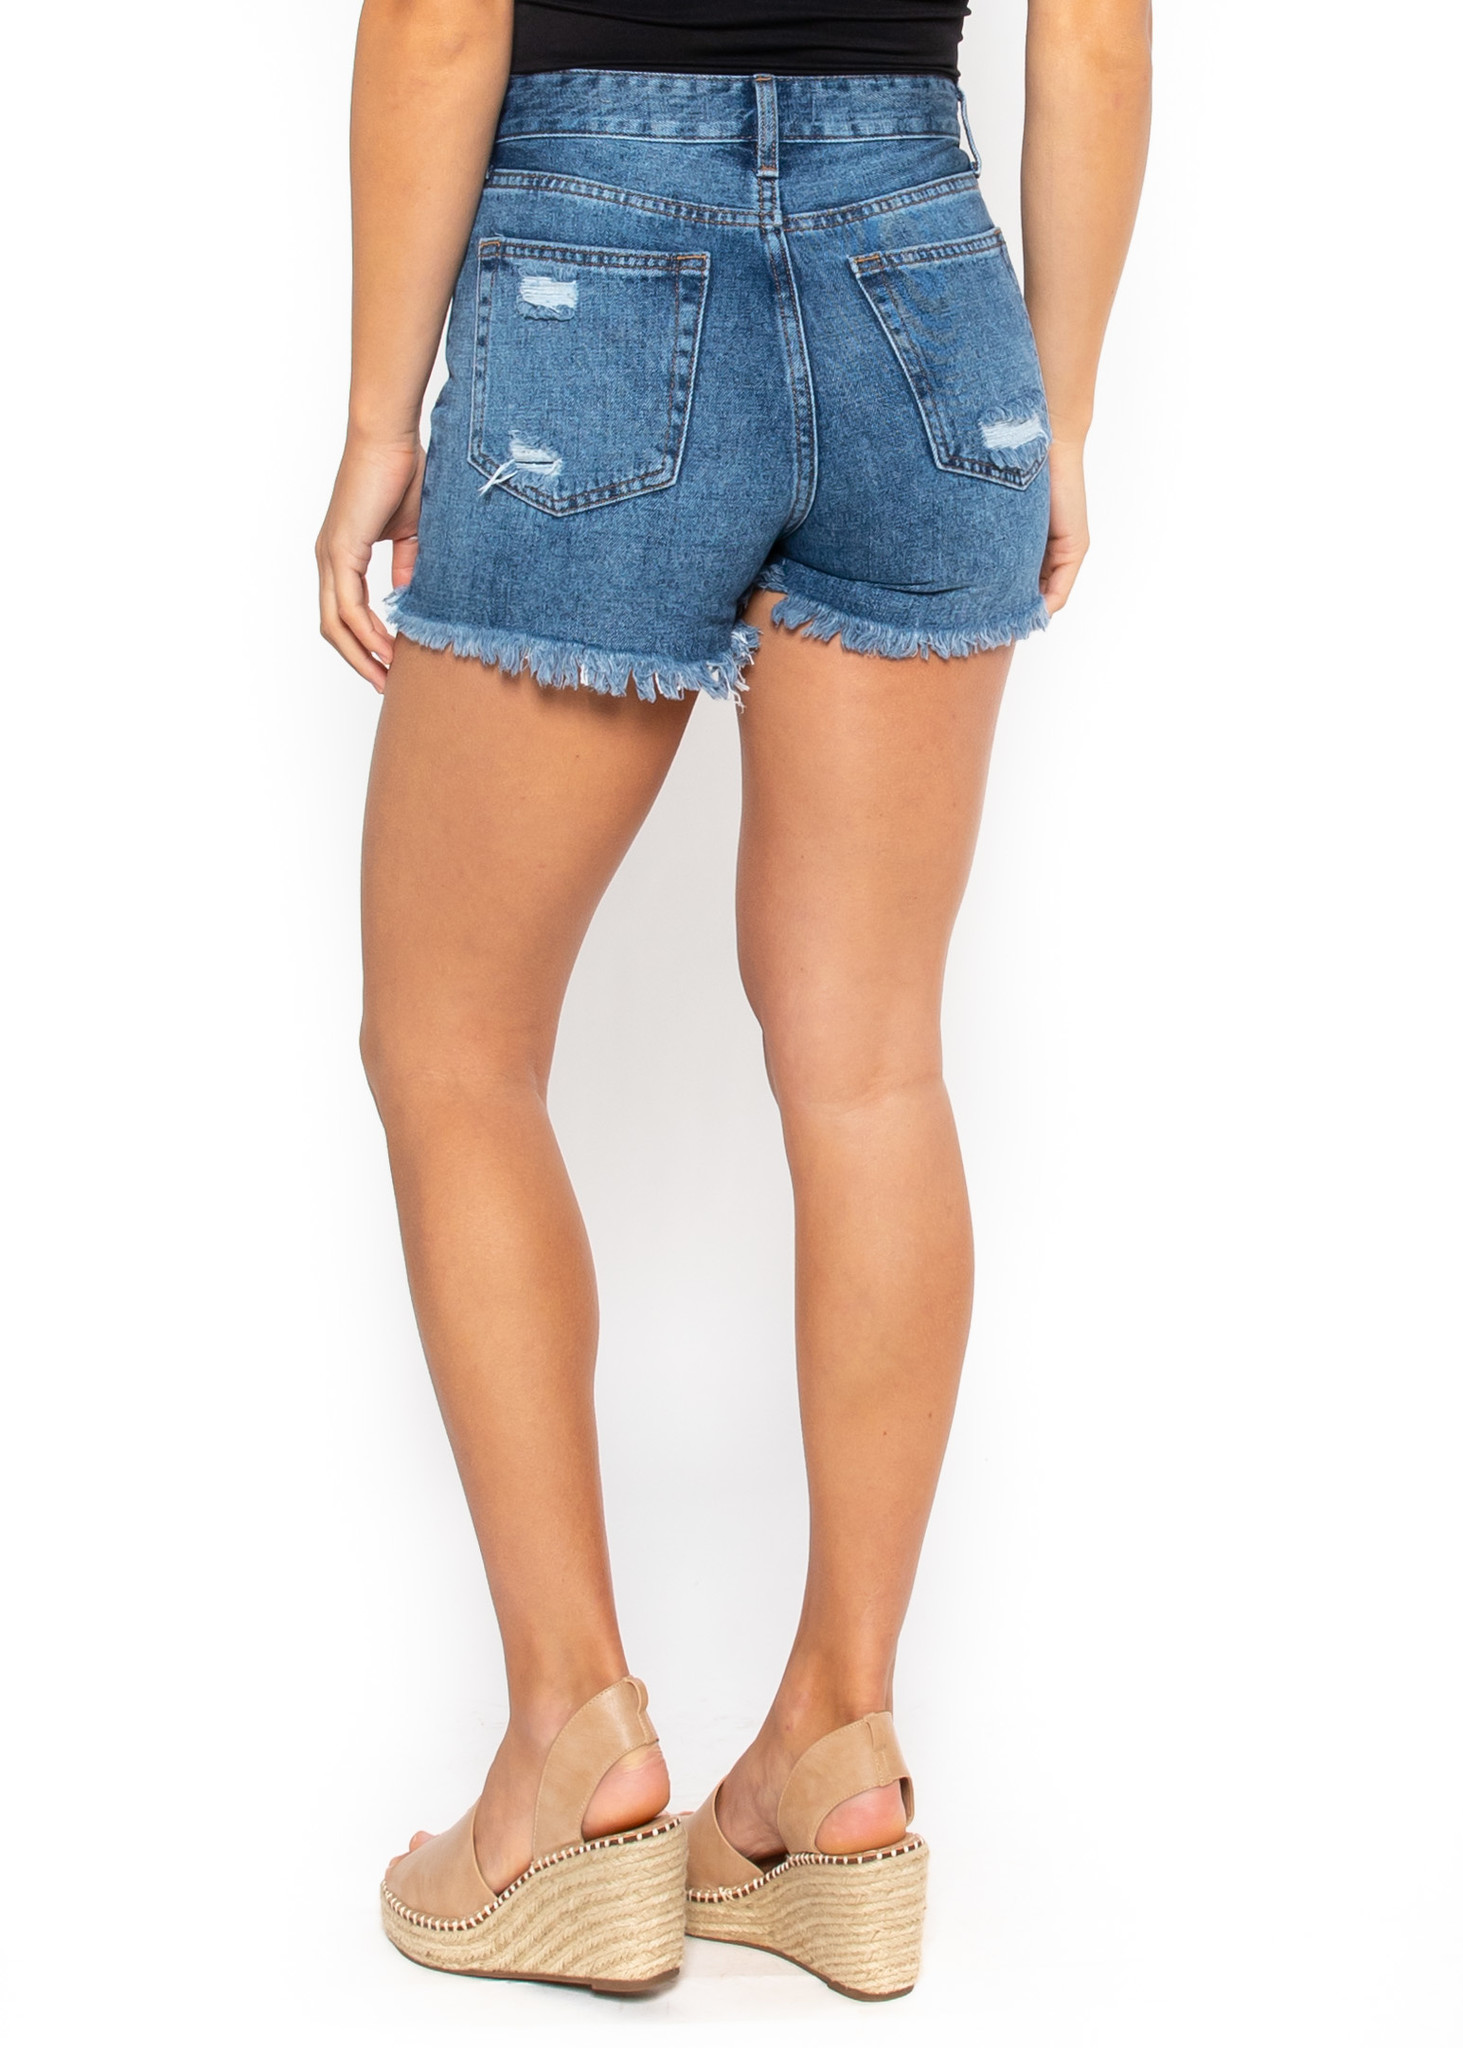 COSTA RICA DISTRESSED SHORTS